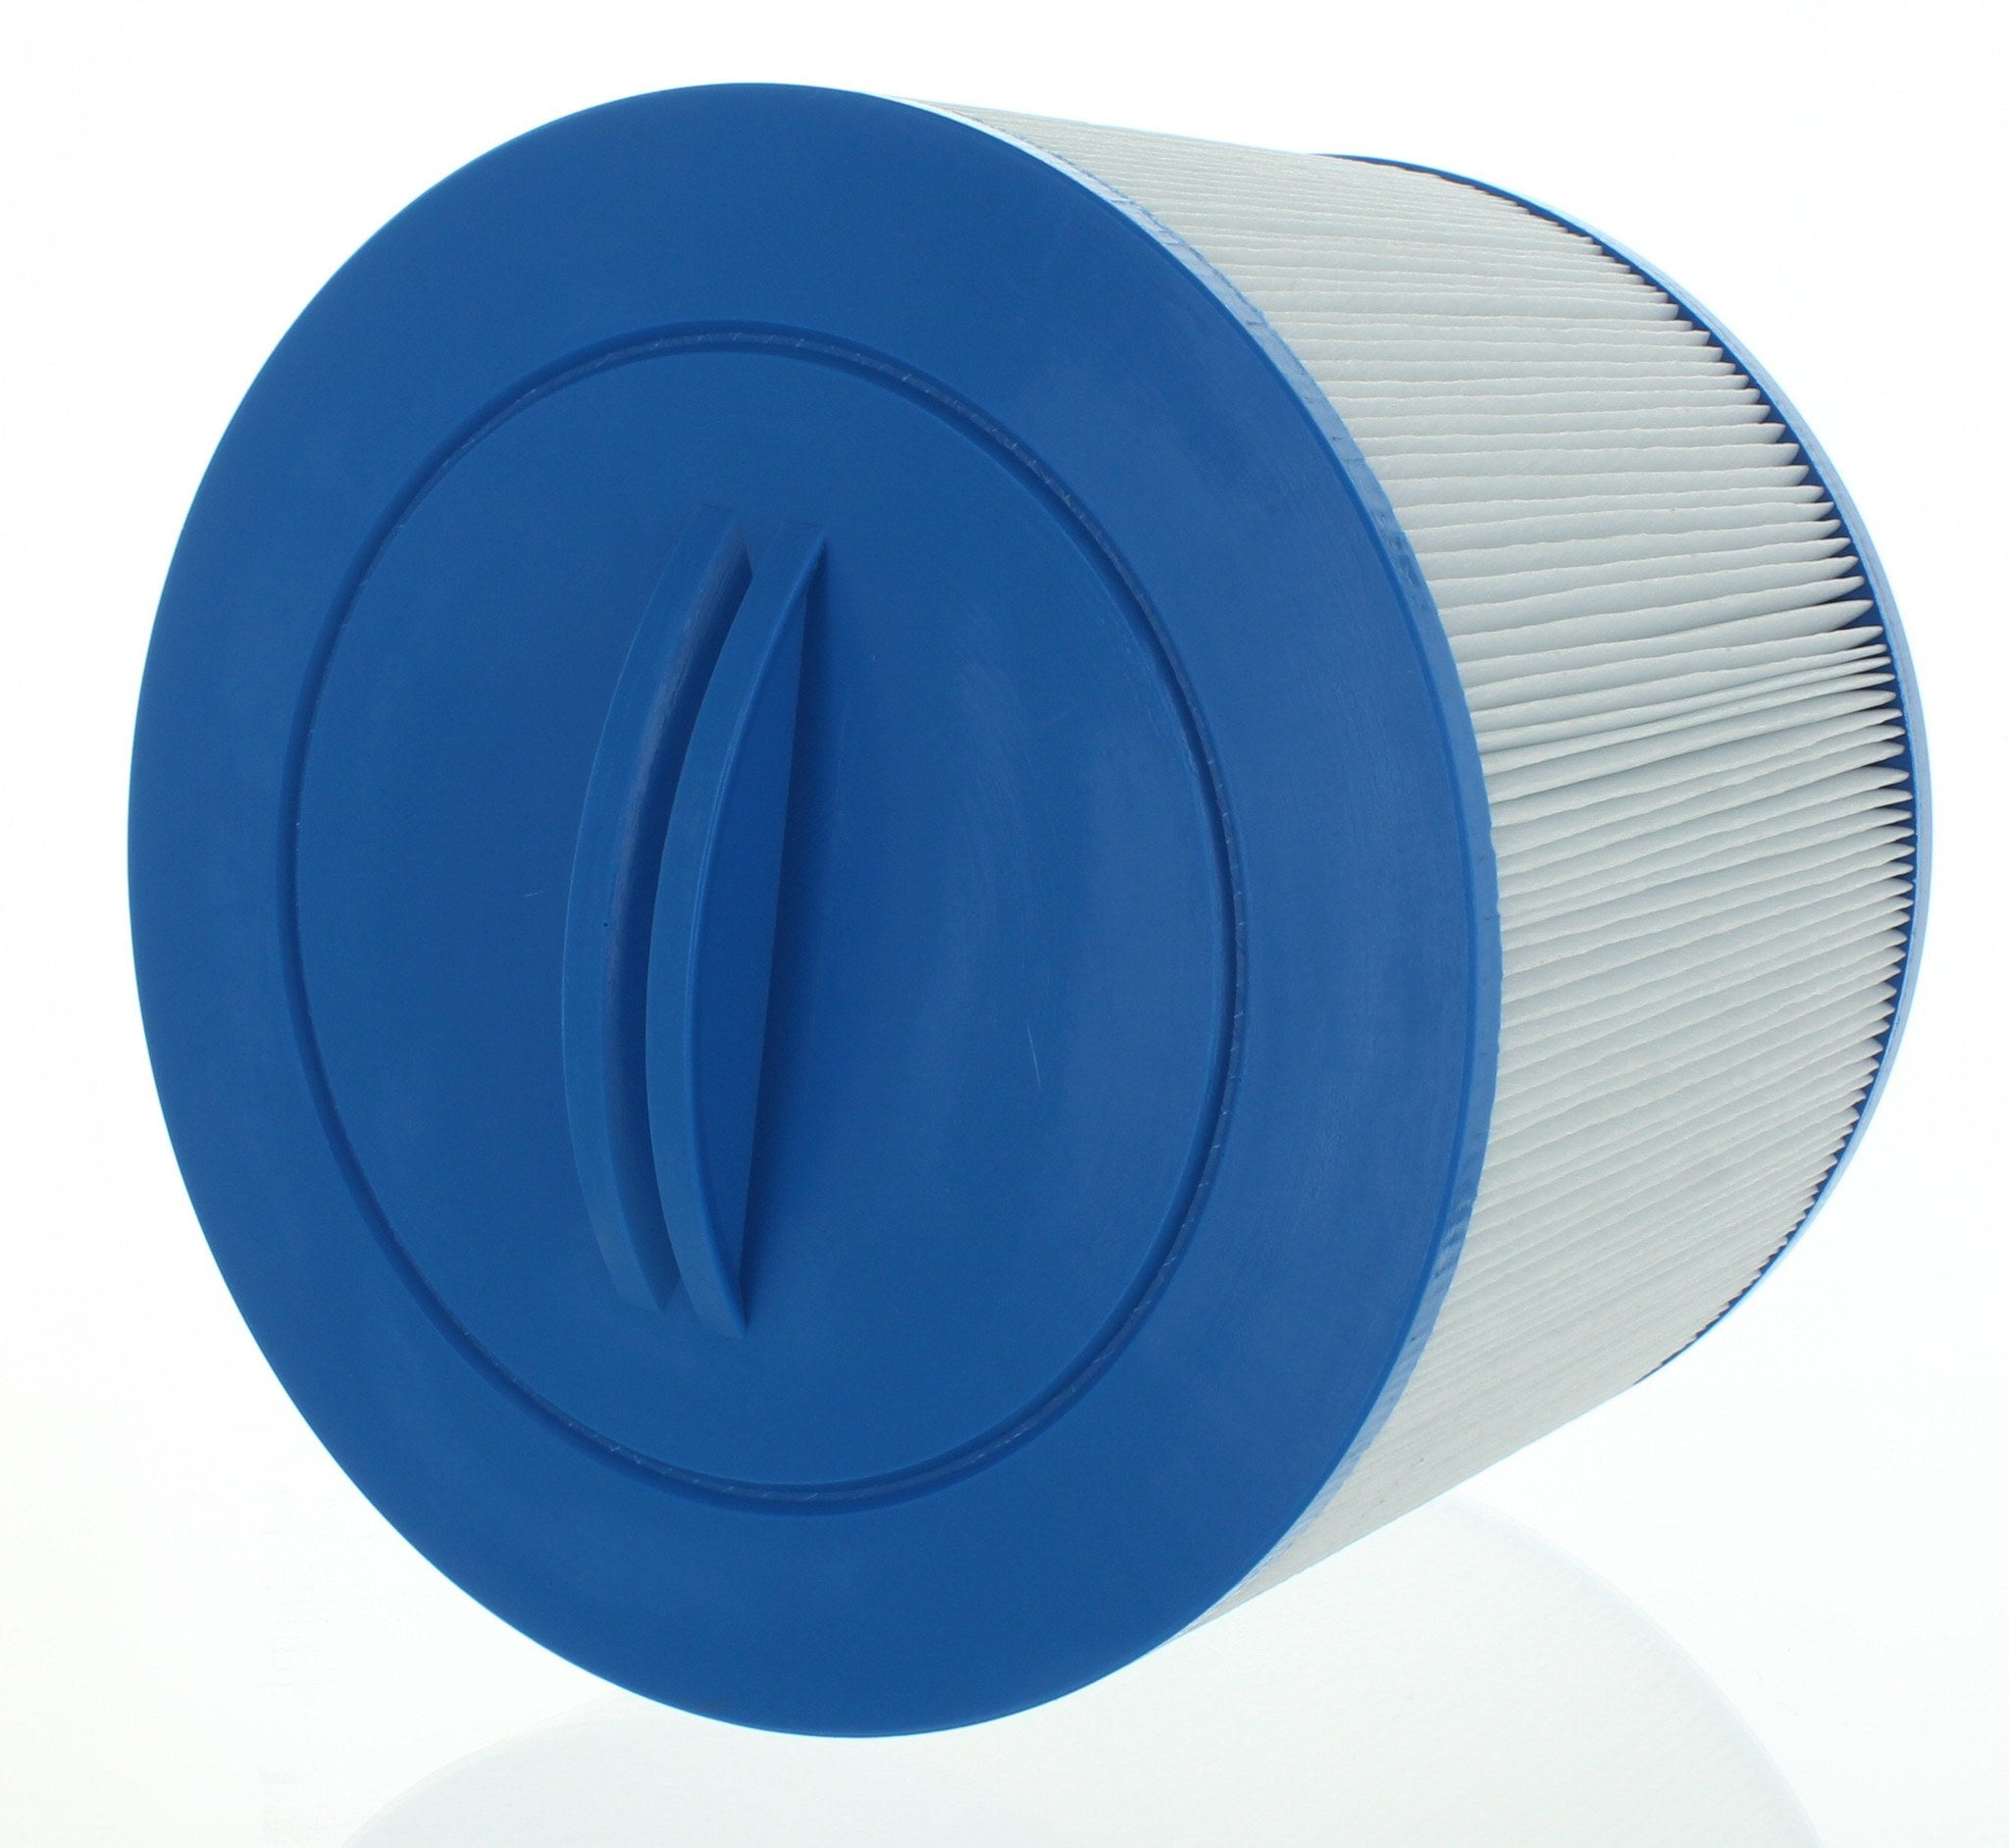 Replaces Unicel 8CH-950, Filbur FC-0536 - Spa Filter Cartridge-Filter Cartridge-FilterDeal.com